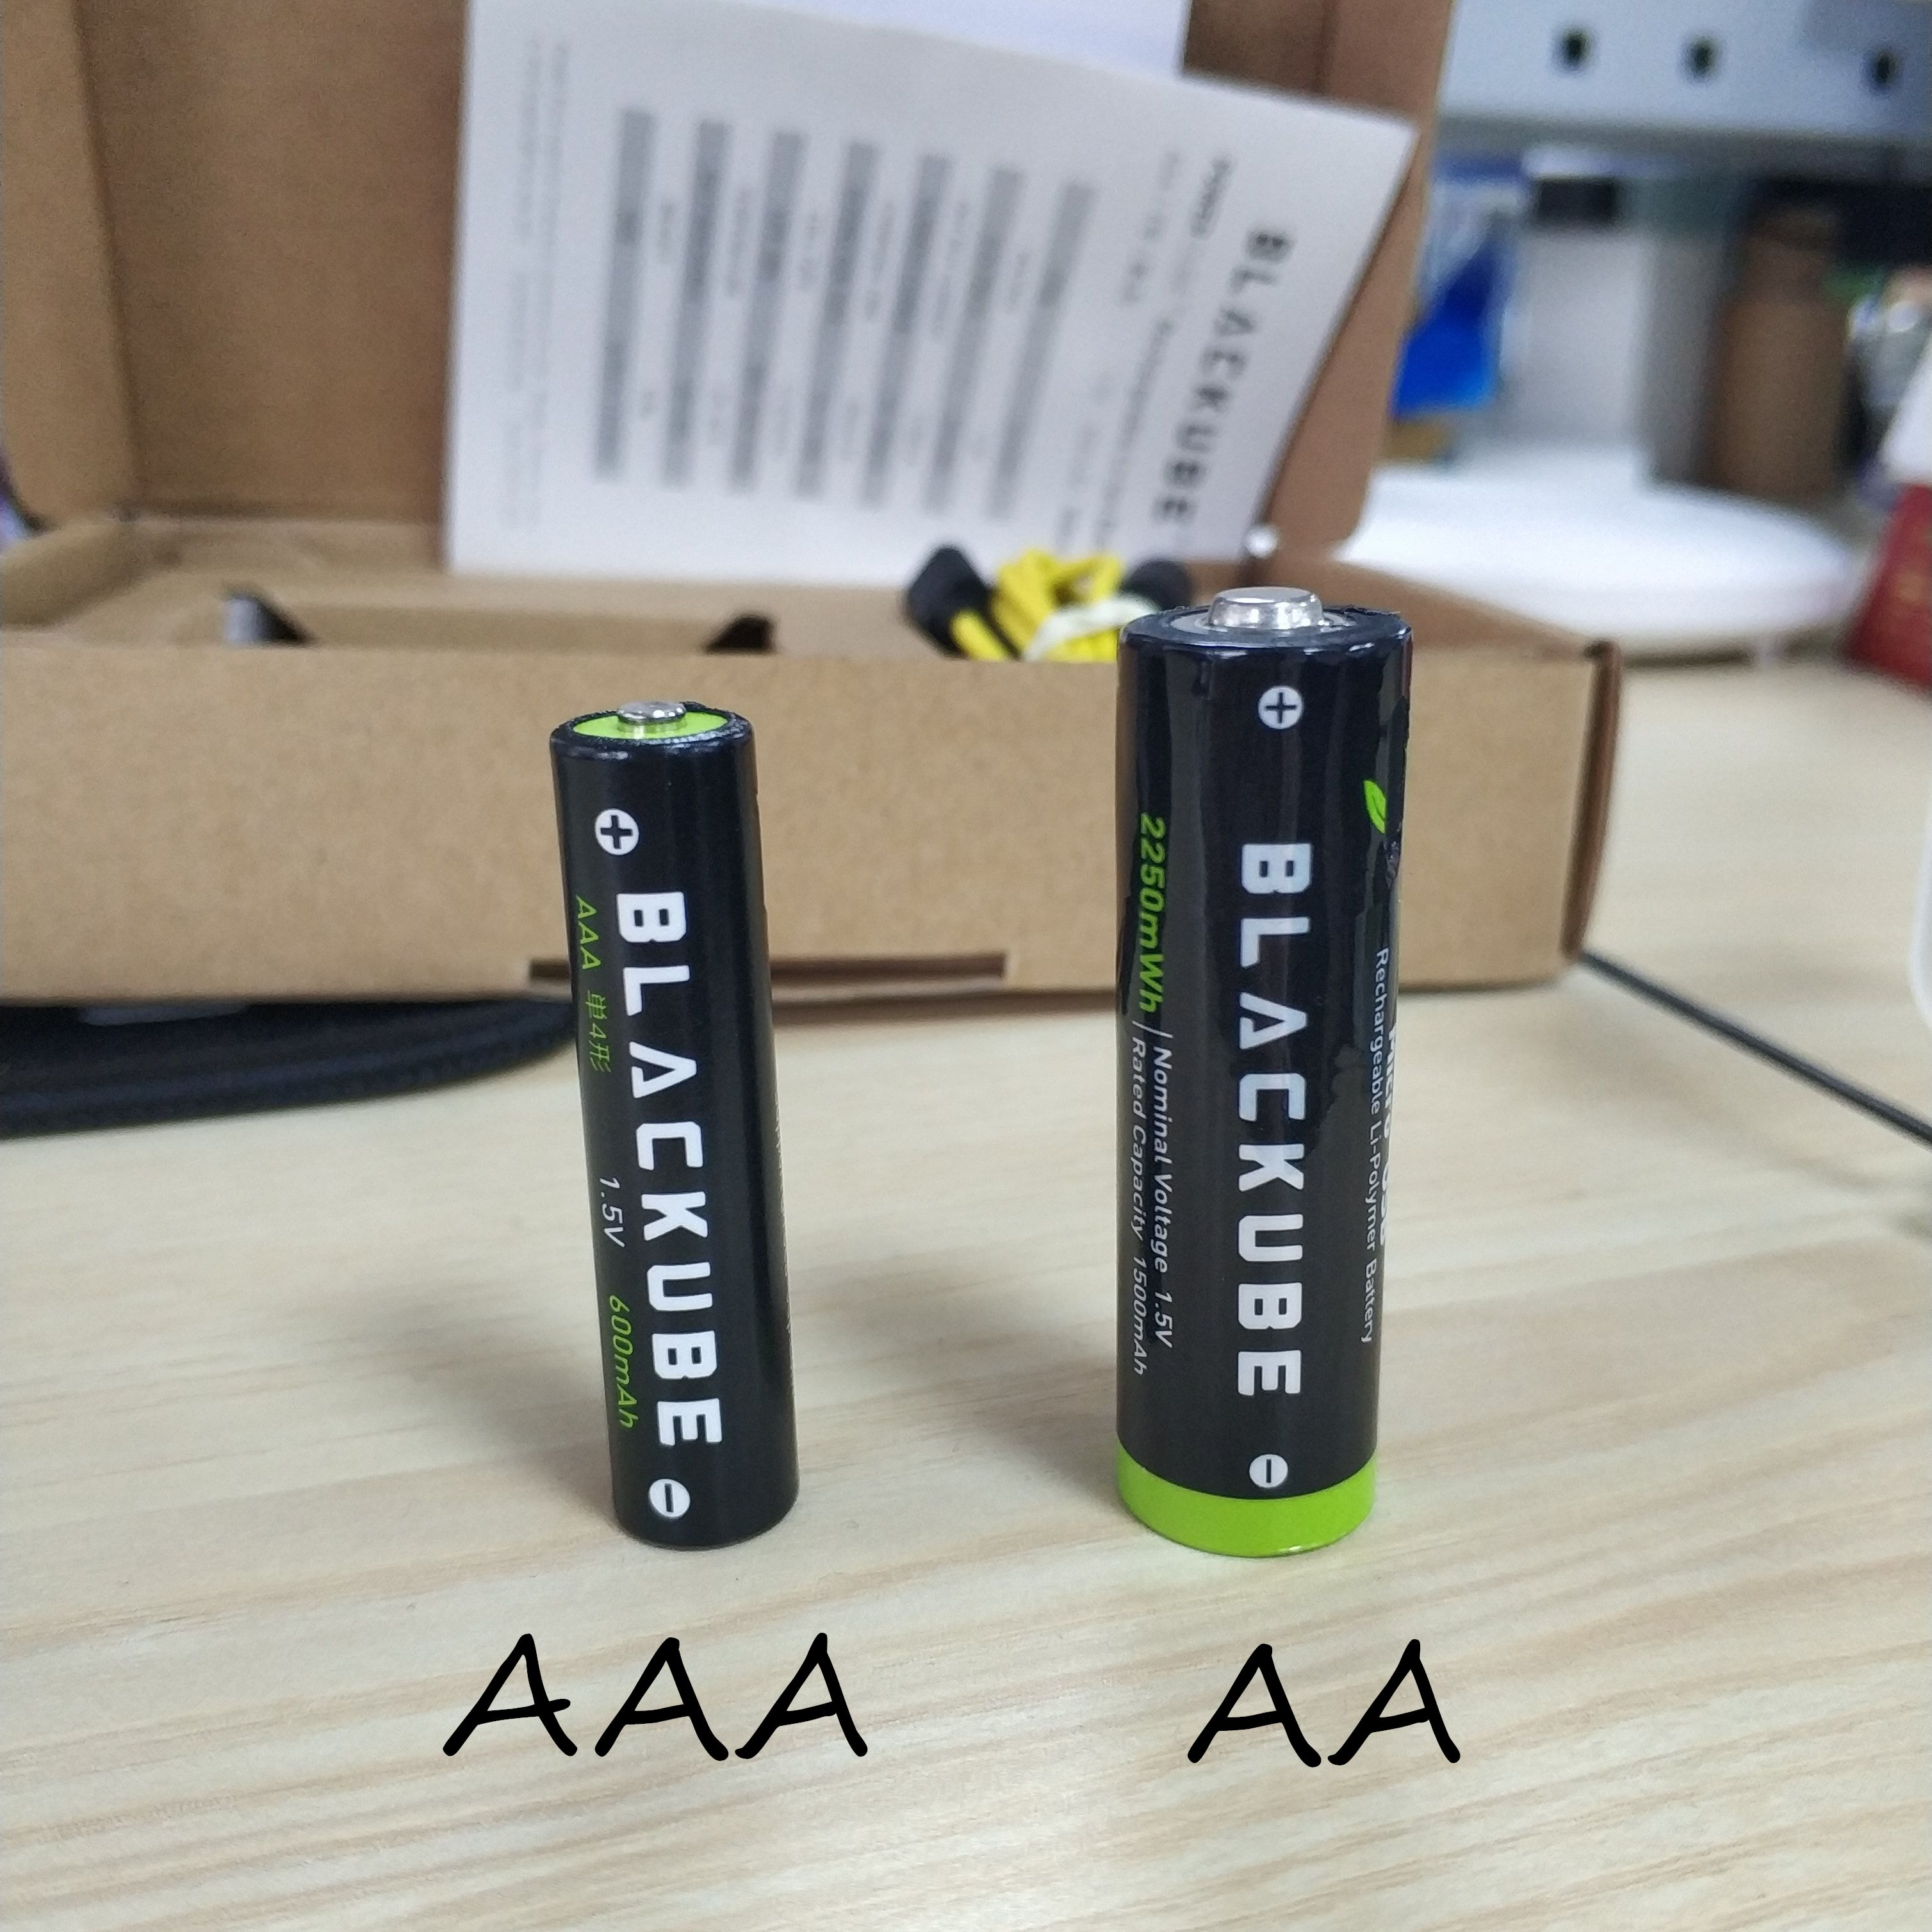 Aa And Aaa Batteries Are Essential Practical Partners In Our Lives Where Do You Use Them Flash Drive Usb Flash Drive Usb